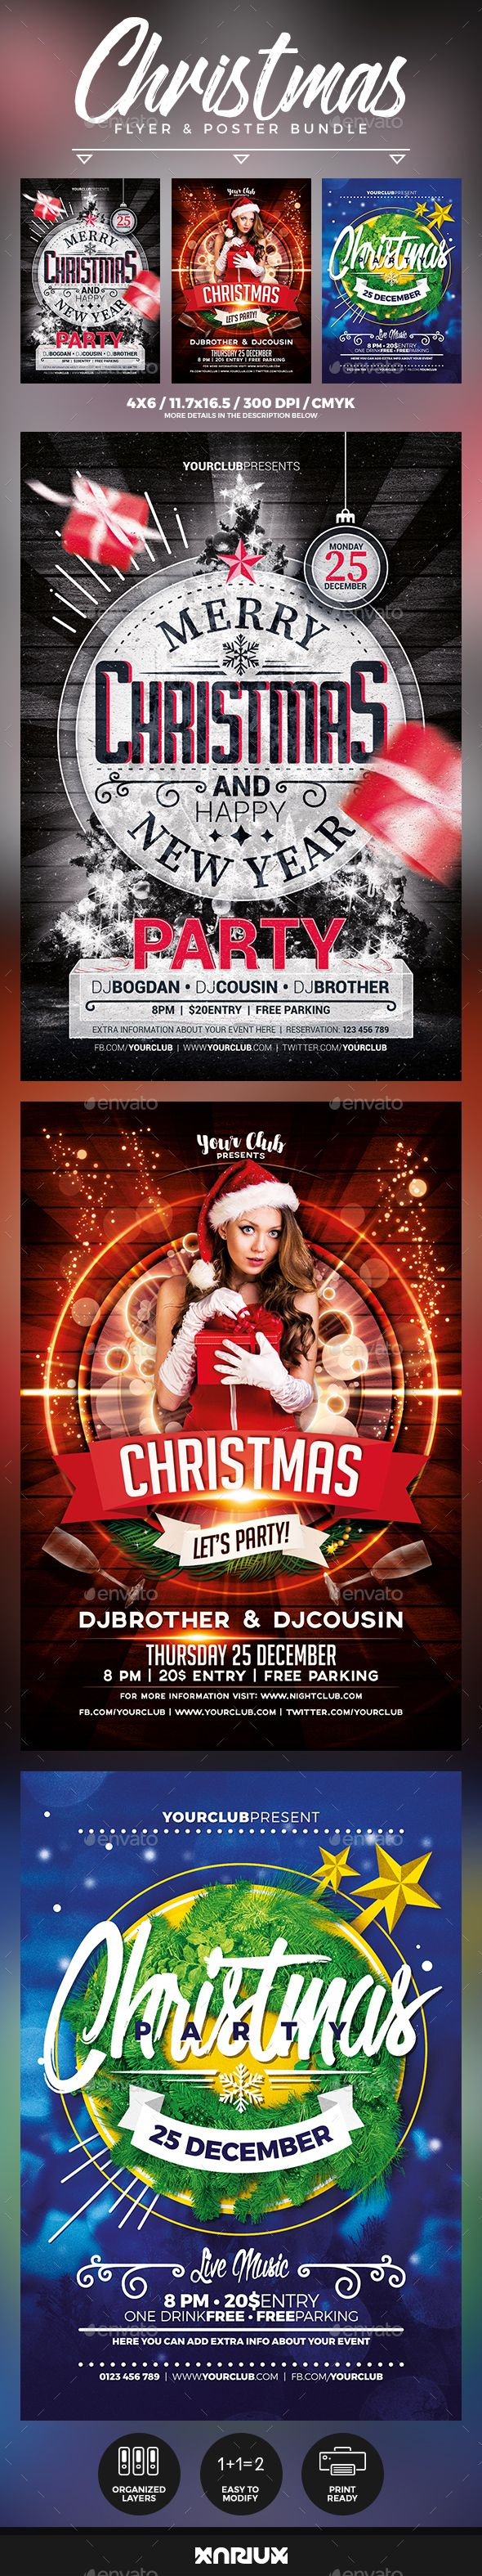 Christmas Flyer and Poster Bundle Template